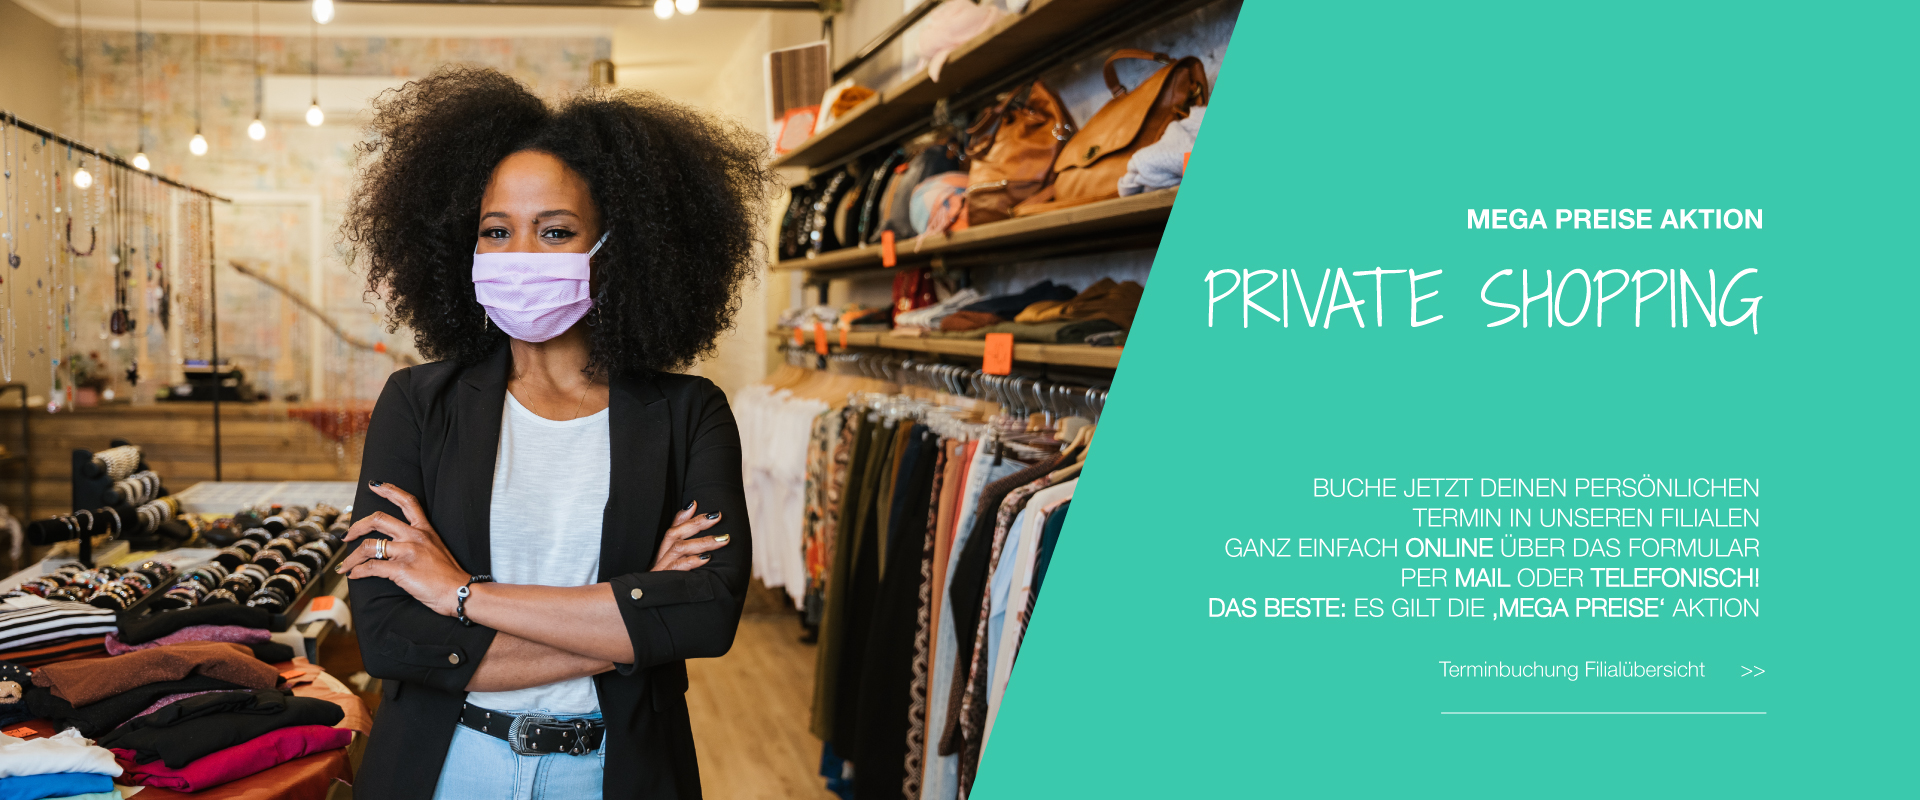 Banner 1 PRIVATE SHOPPING